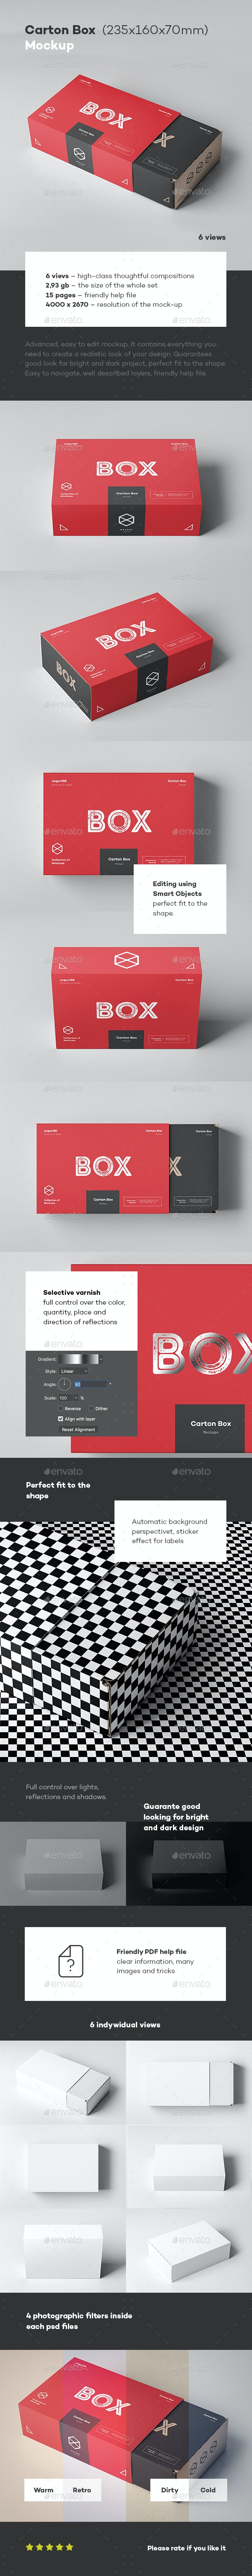 Carton Box Mock-up 235x160x70 & Wrapper - Miscellaneous Packaging